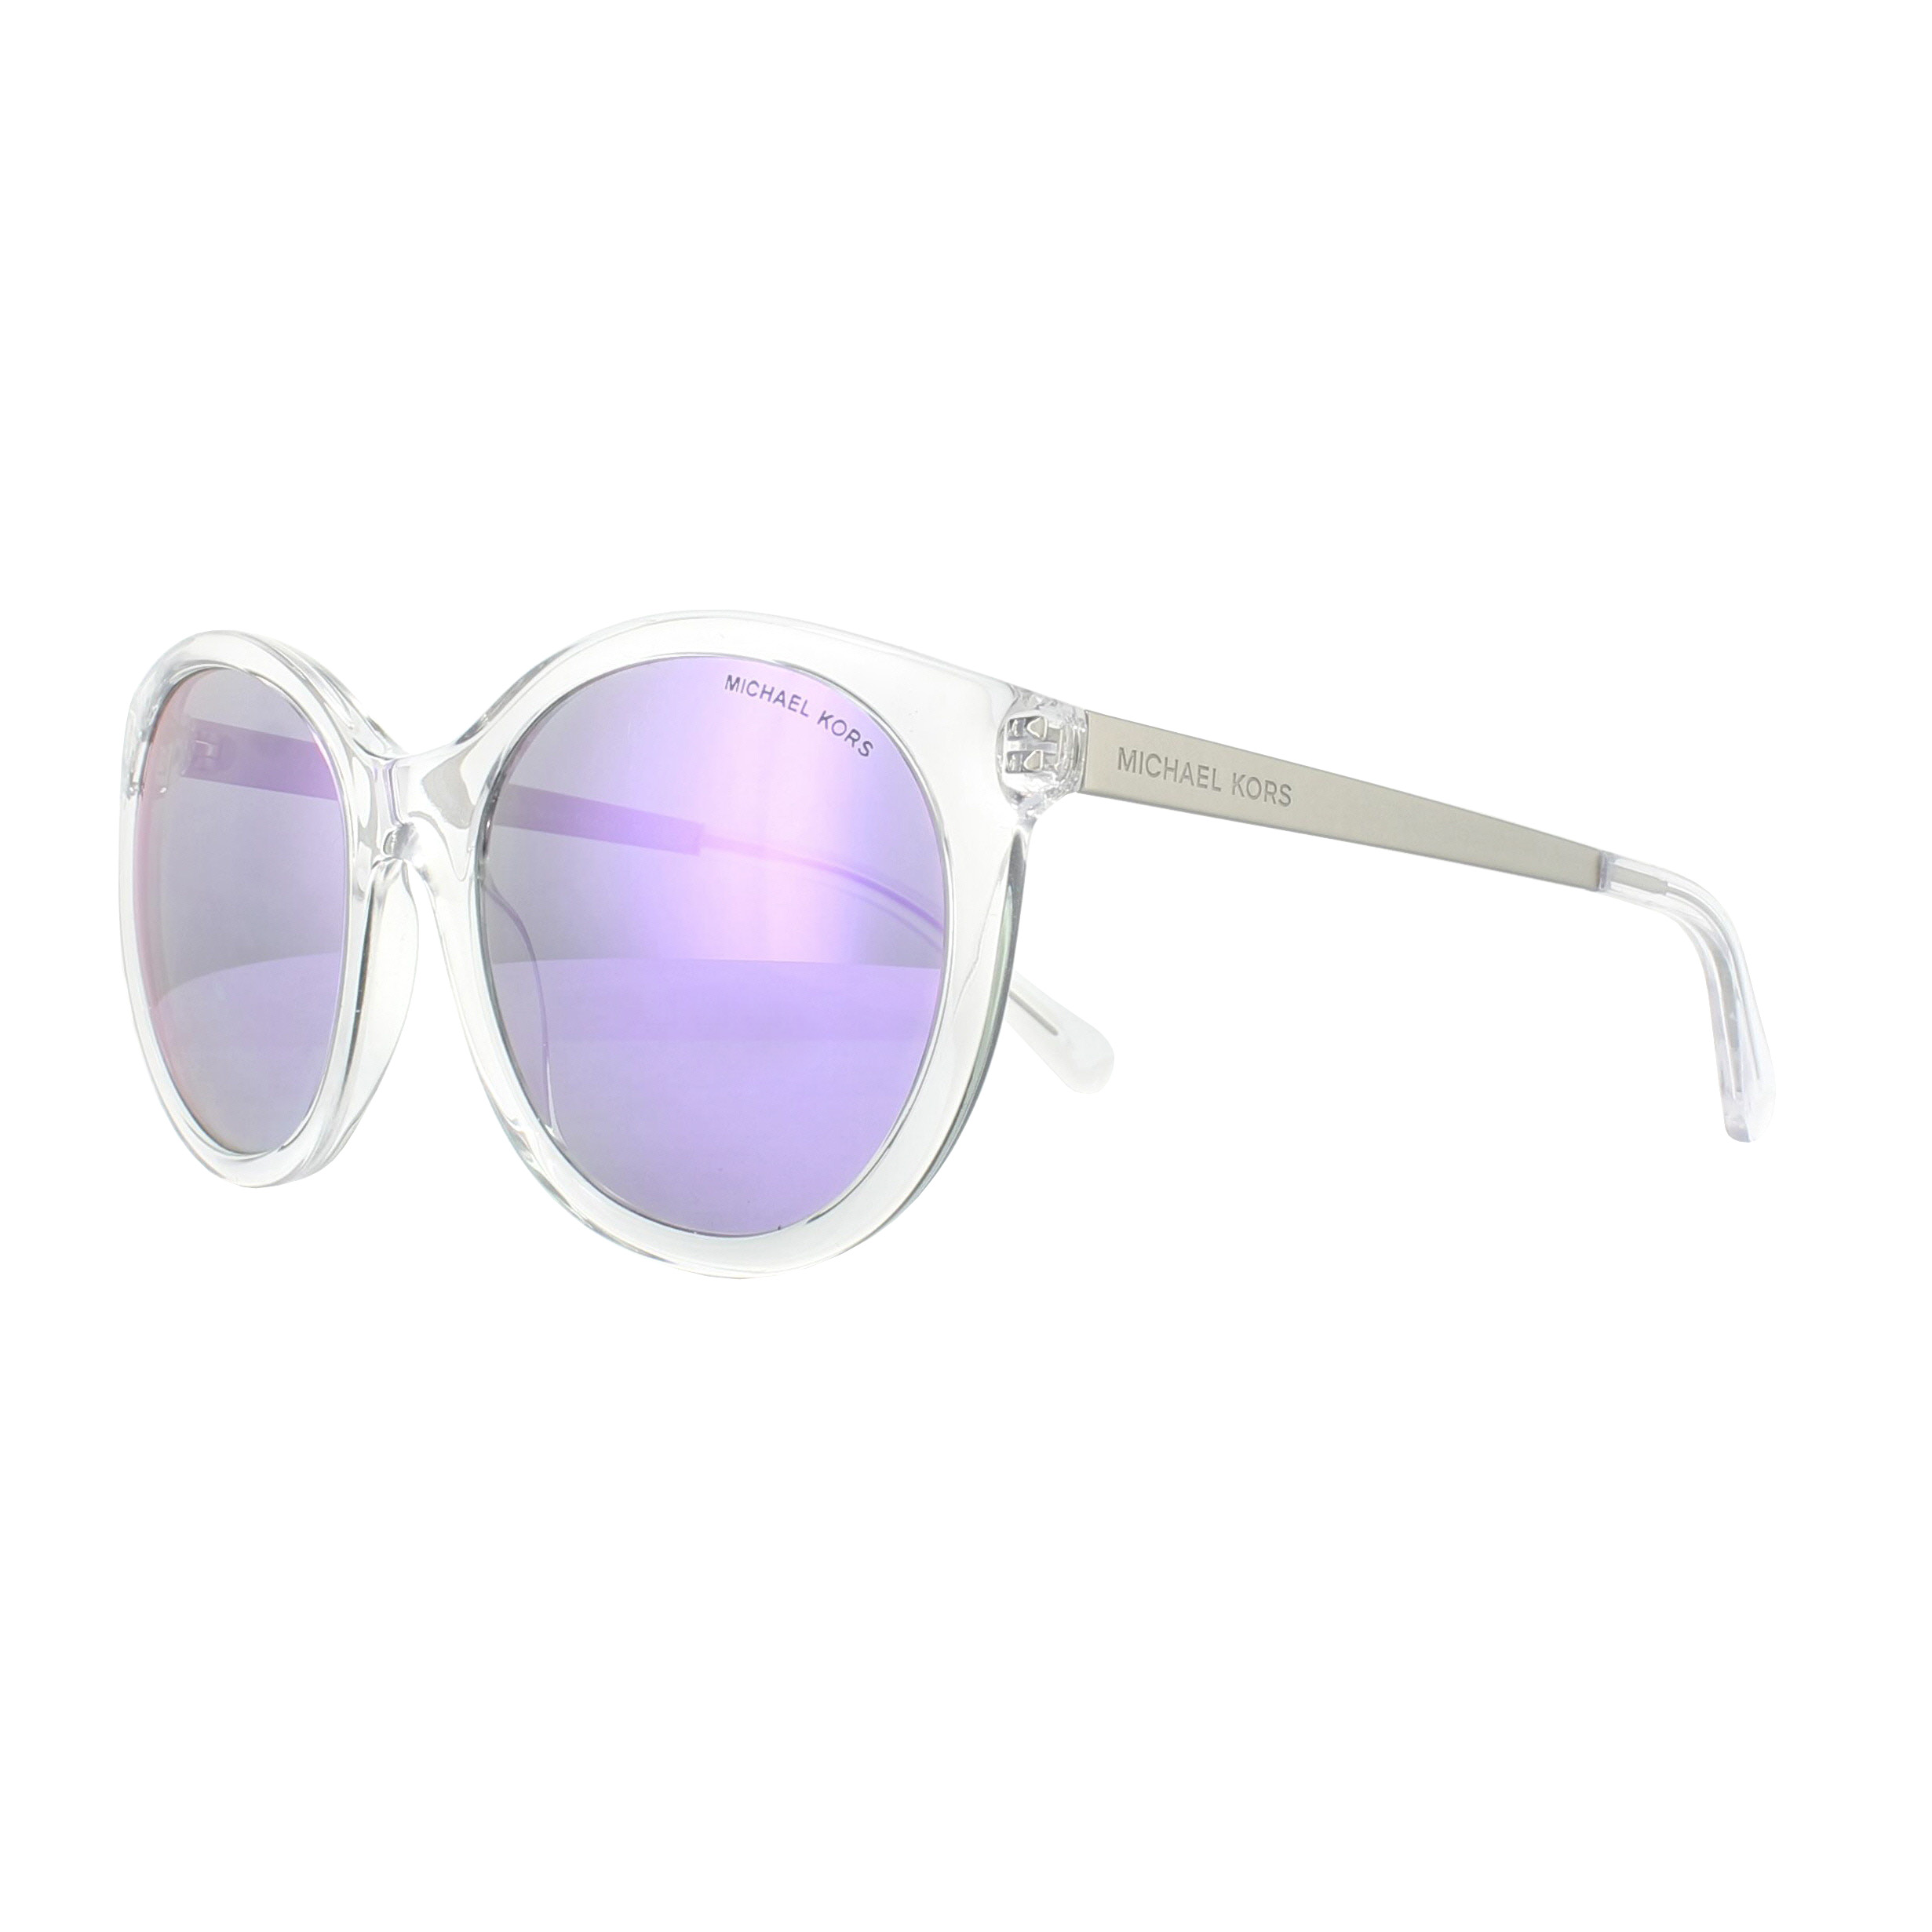 Island Tropics Sunglasses in Crystal MK2034 32014V 55 Michael Kors